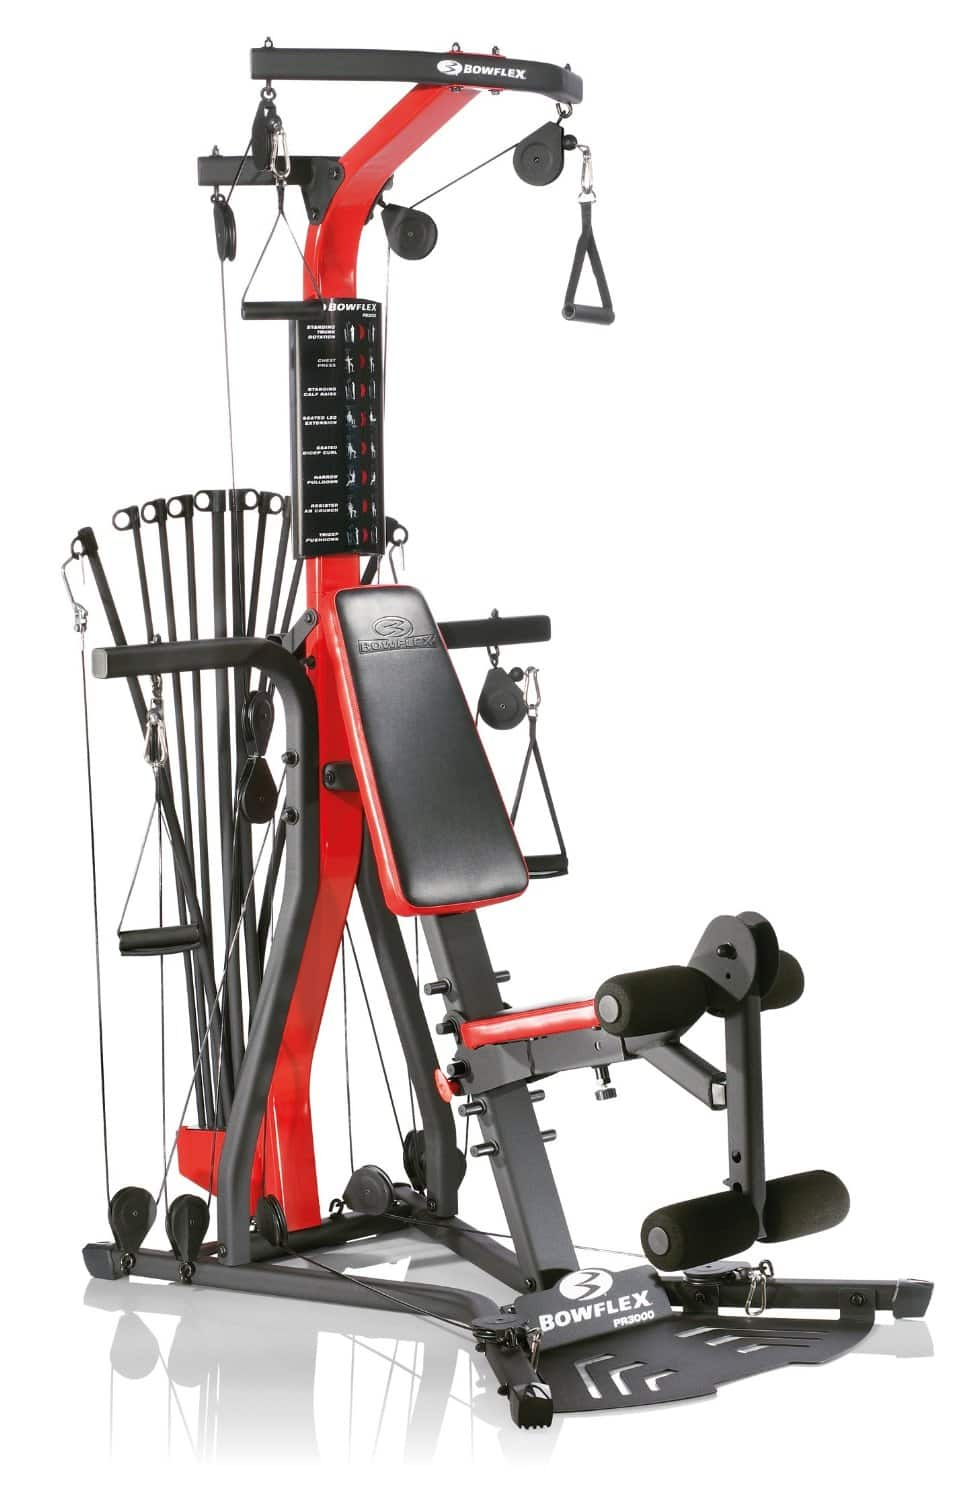 Bowflex PR3000 Home Gym $629, Bowflex PR1000 Home Gym  $349 + Free Shipping